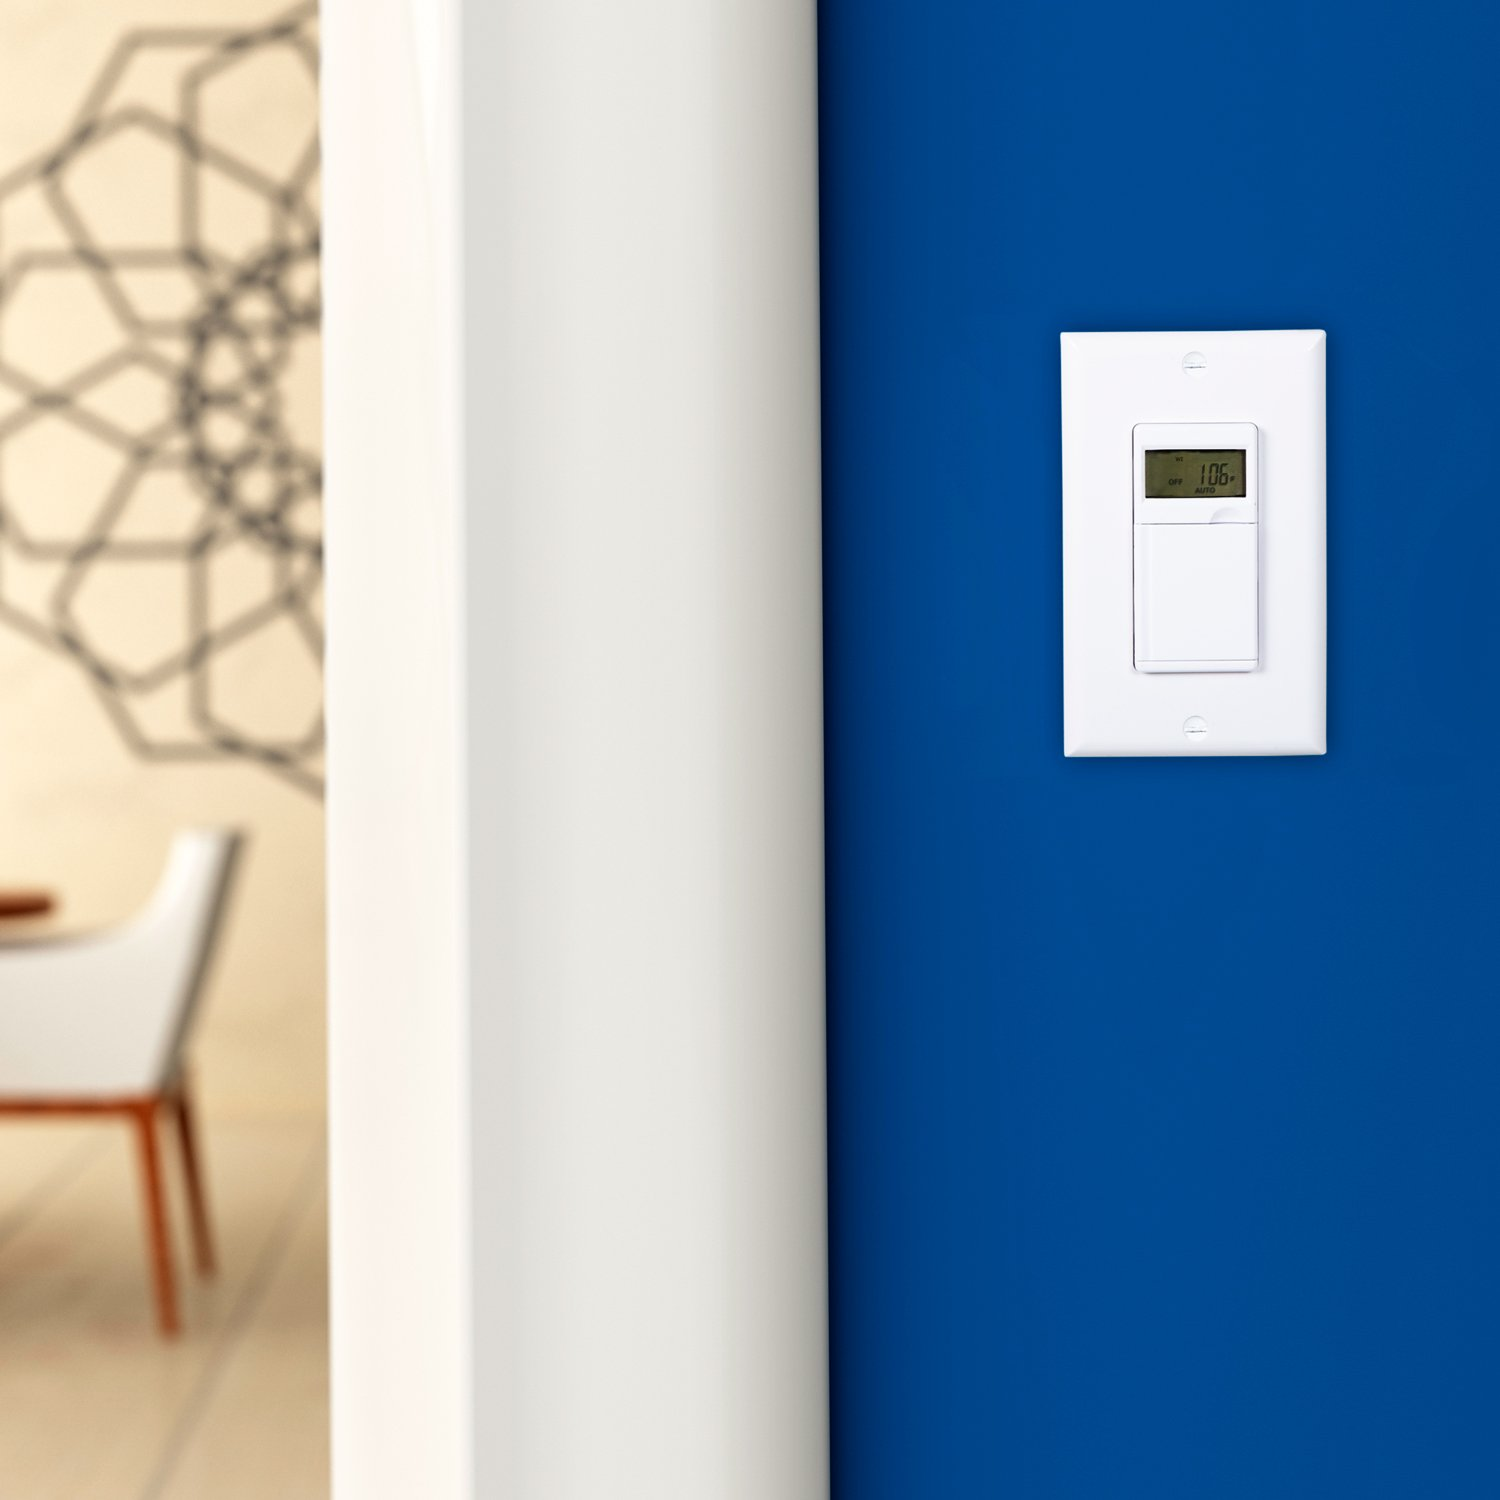 Maxxima Digital In Wall 7 Day Programmable Timer Light Switch Up To 3 Way 18 On Off Settings Adjusts For Daylight Savings Time Compatible